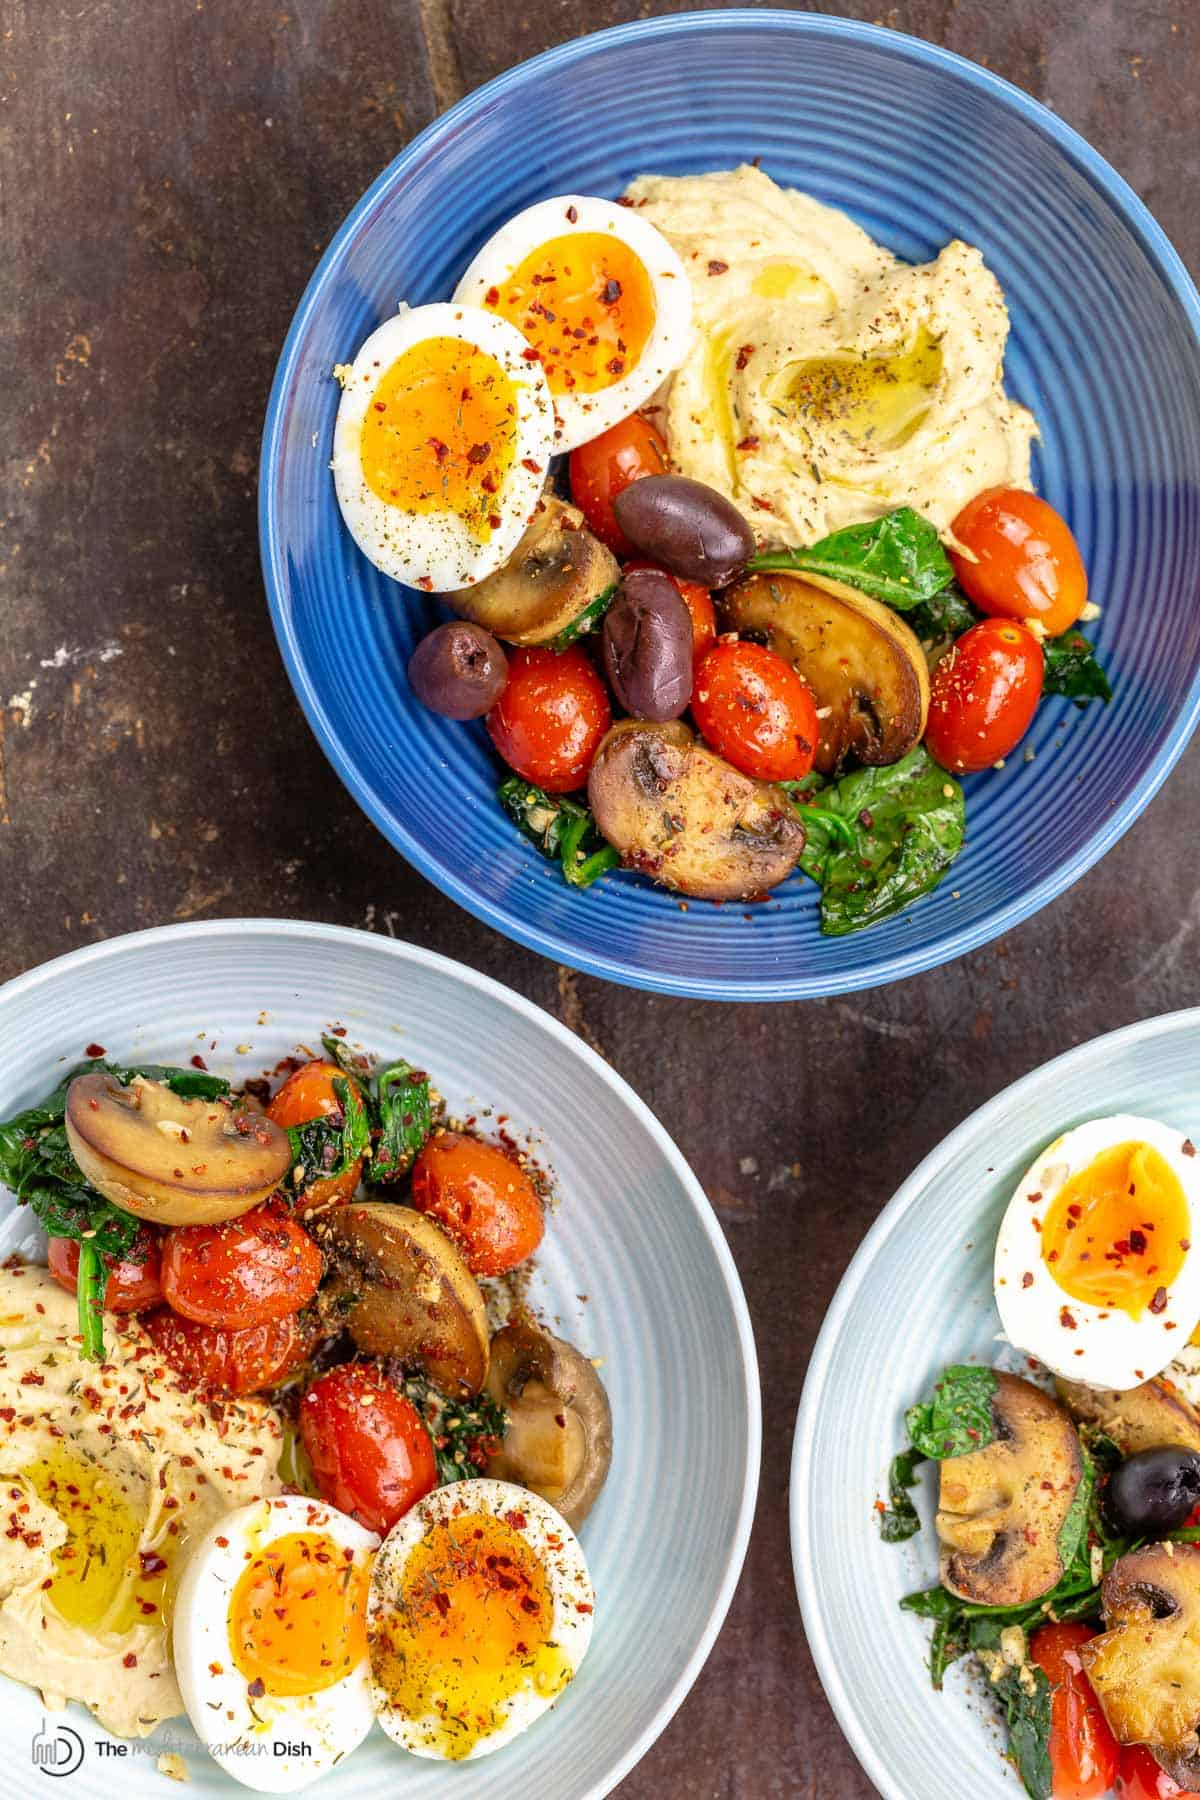 Two savory breakfast bowls with eggs, vegetables and hummus